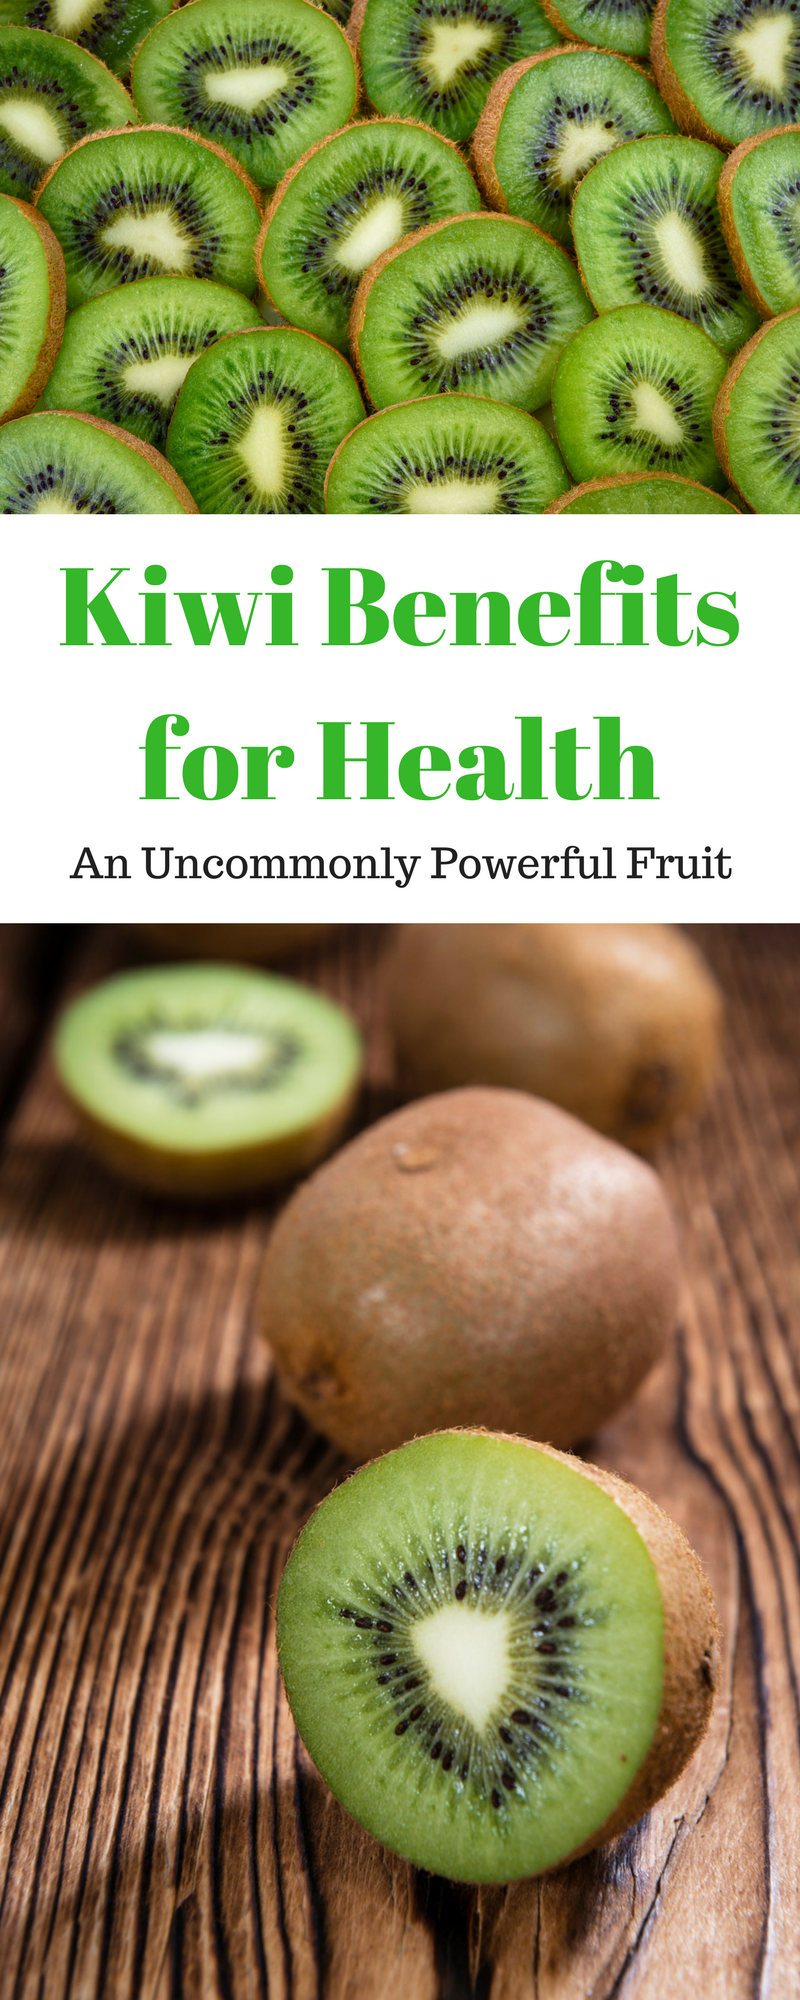 Kiwi: The Superfoods Health Benefits recommendations